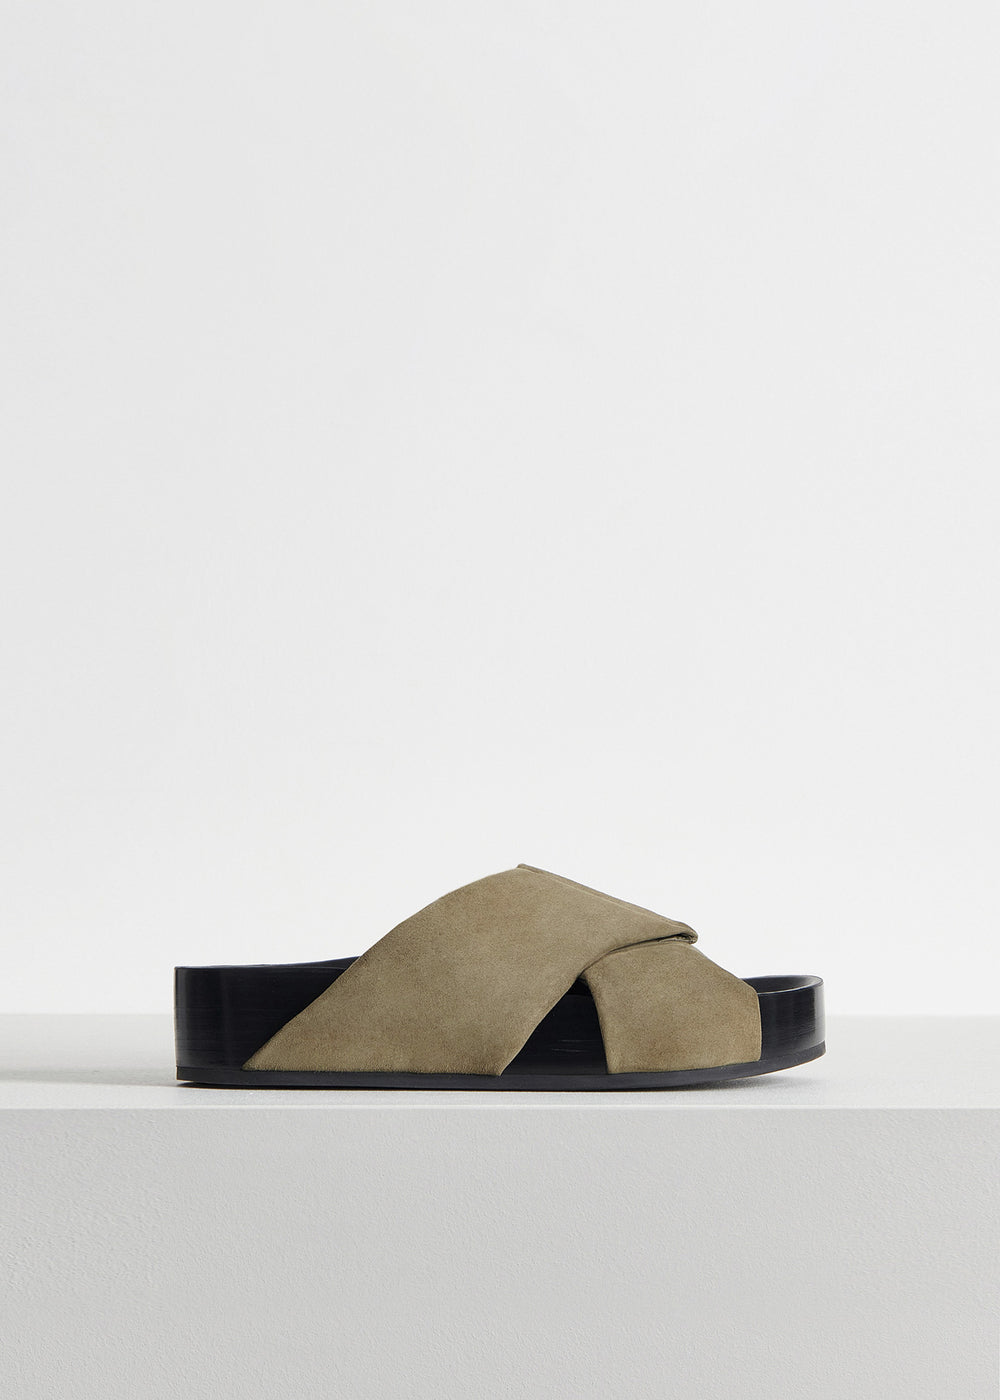 Slide Sandal in Suede - Dark Brown in Olive by Co Collections